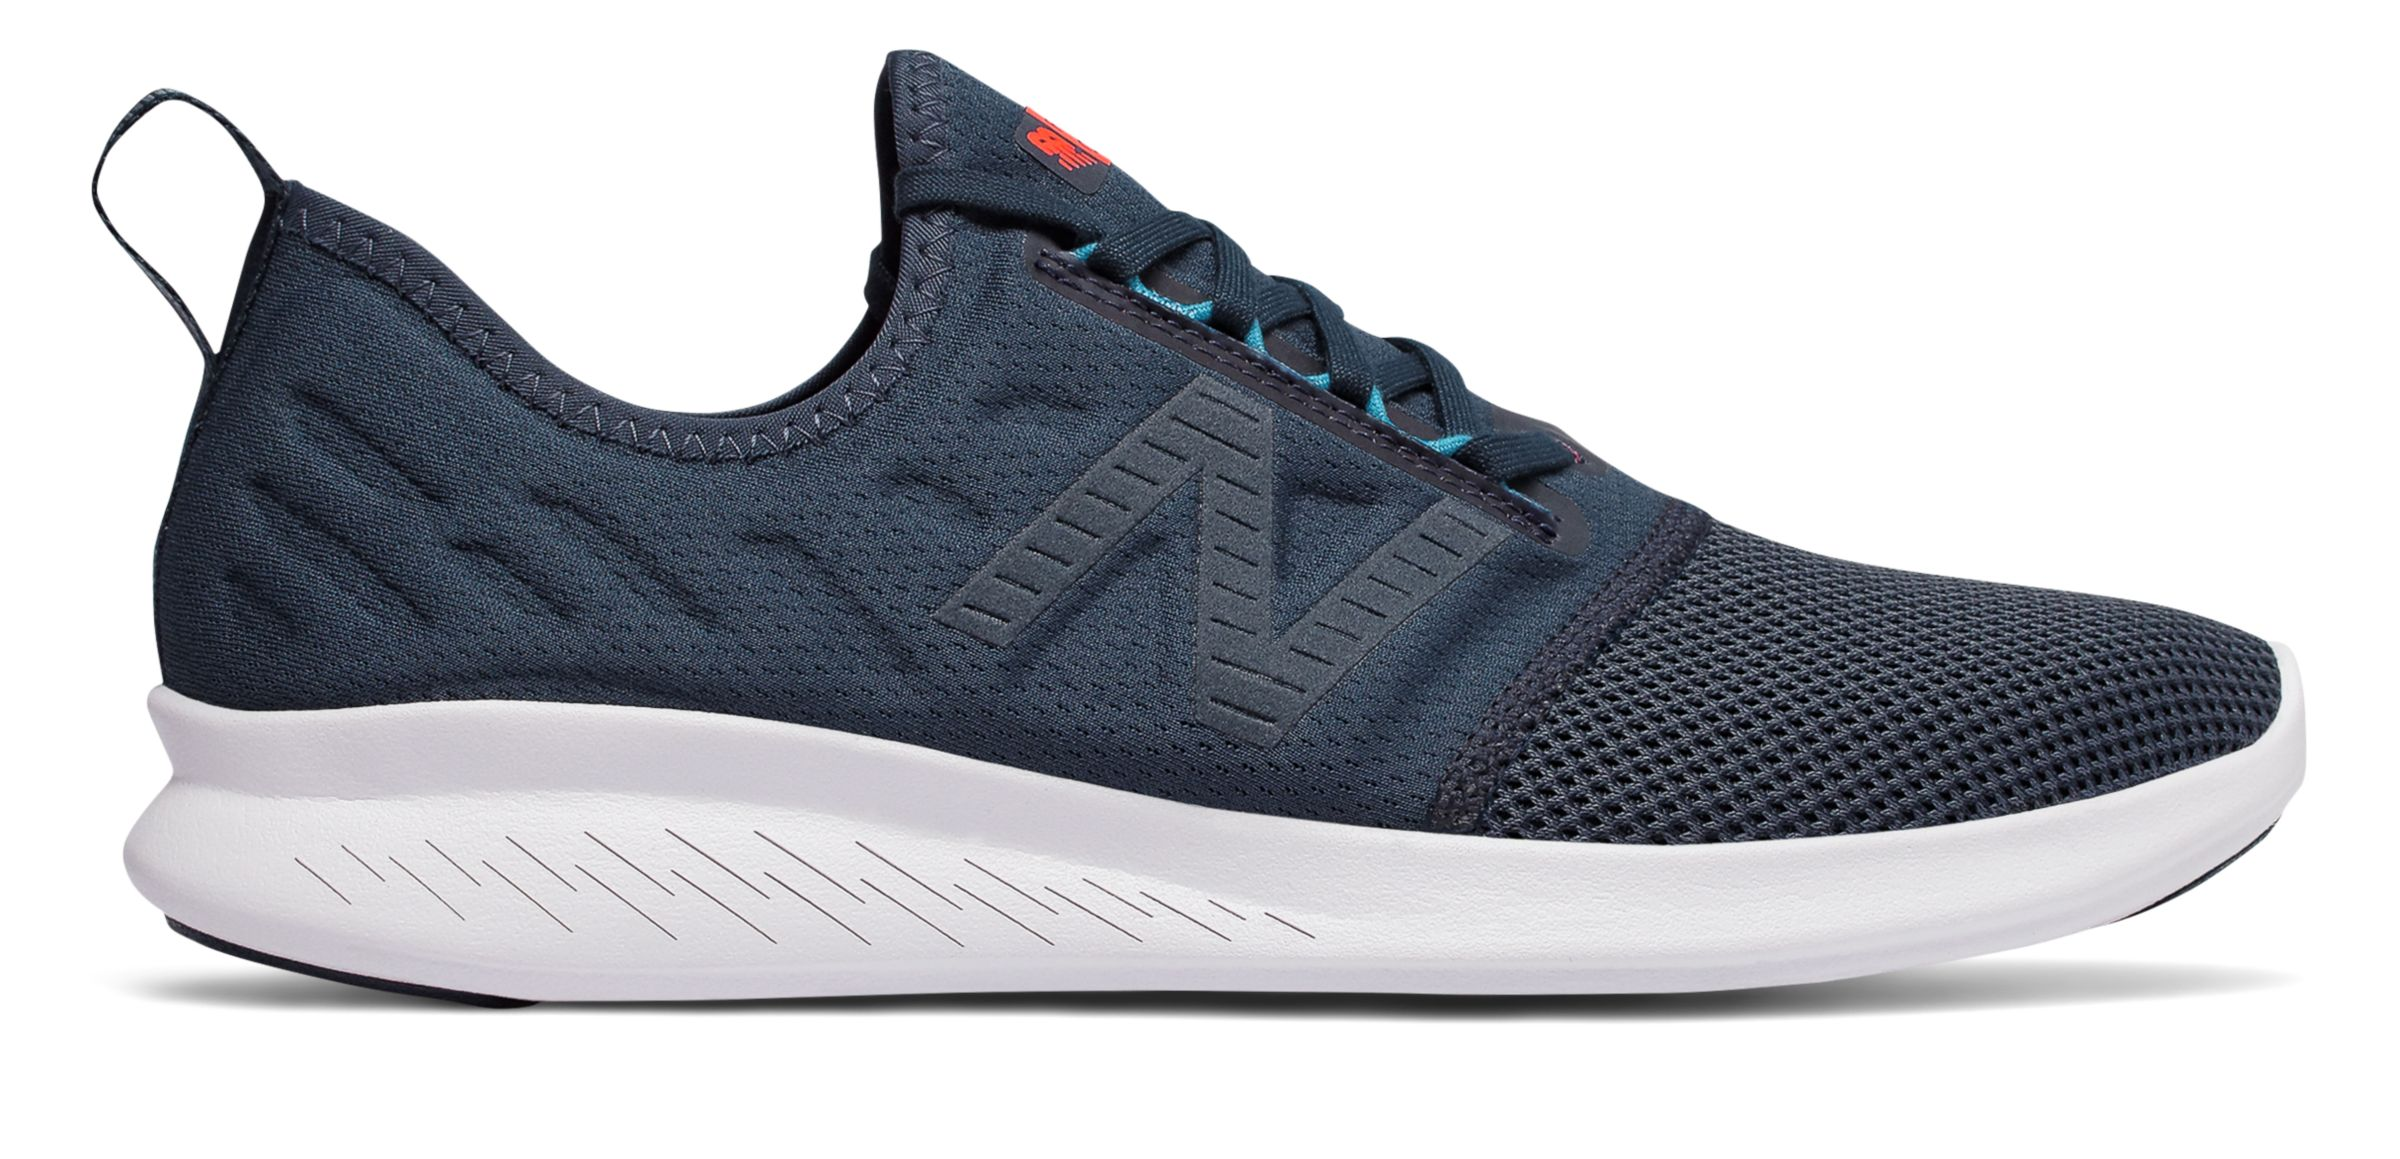 0cb5fabe76a21 New Balance Men s Fuelcore Coast V4 Comfortable Running Shoes Grey ...